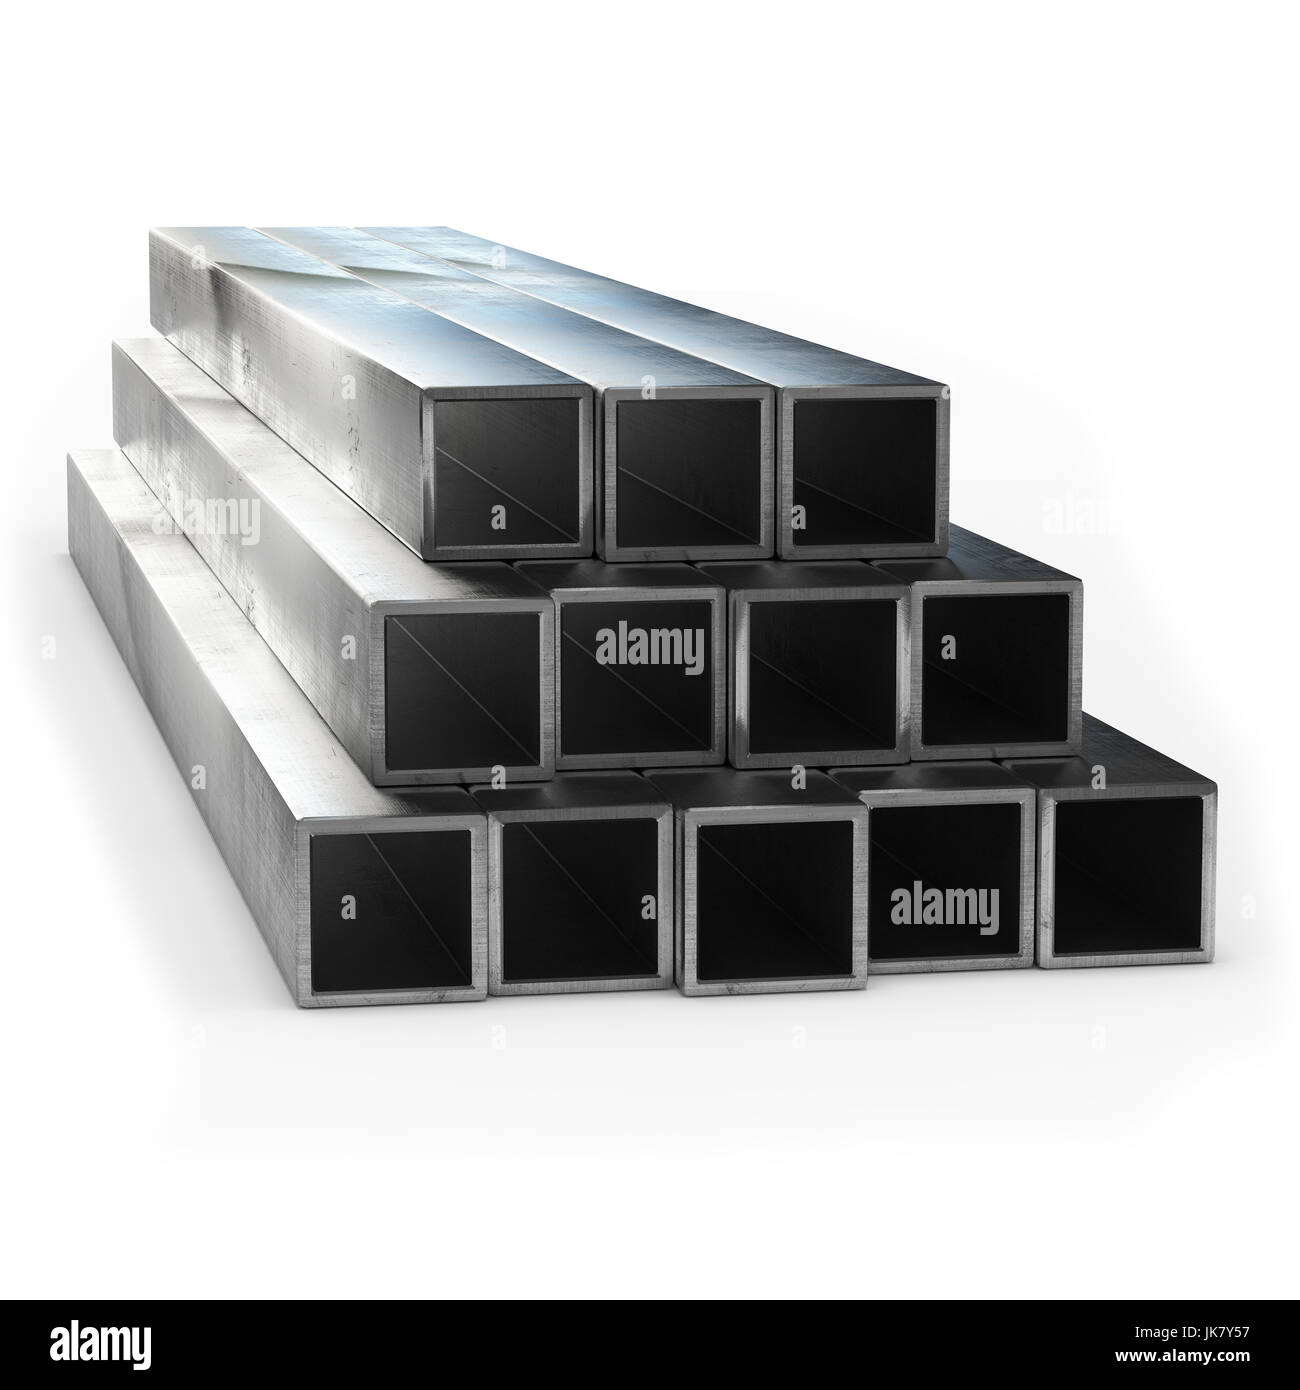 Stainless steel tube 3d rendering isolated. - Stock Image